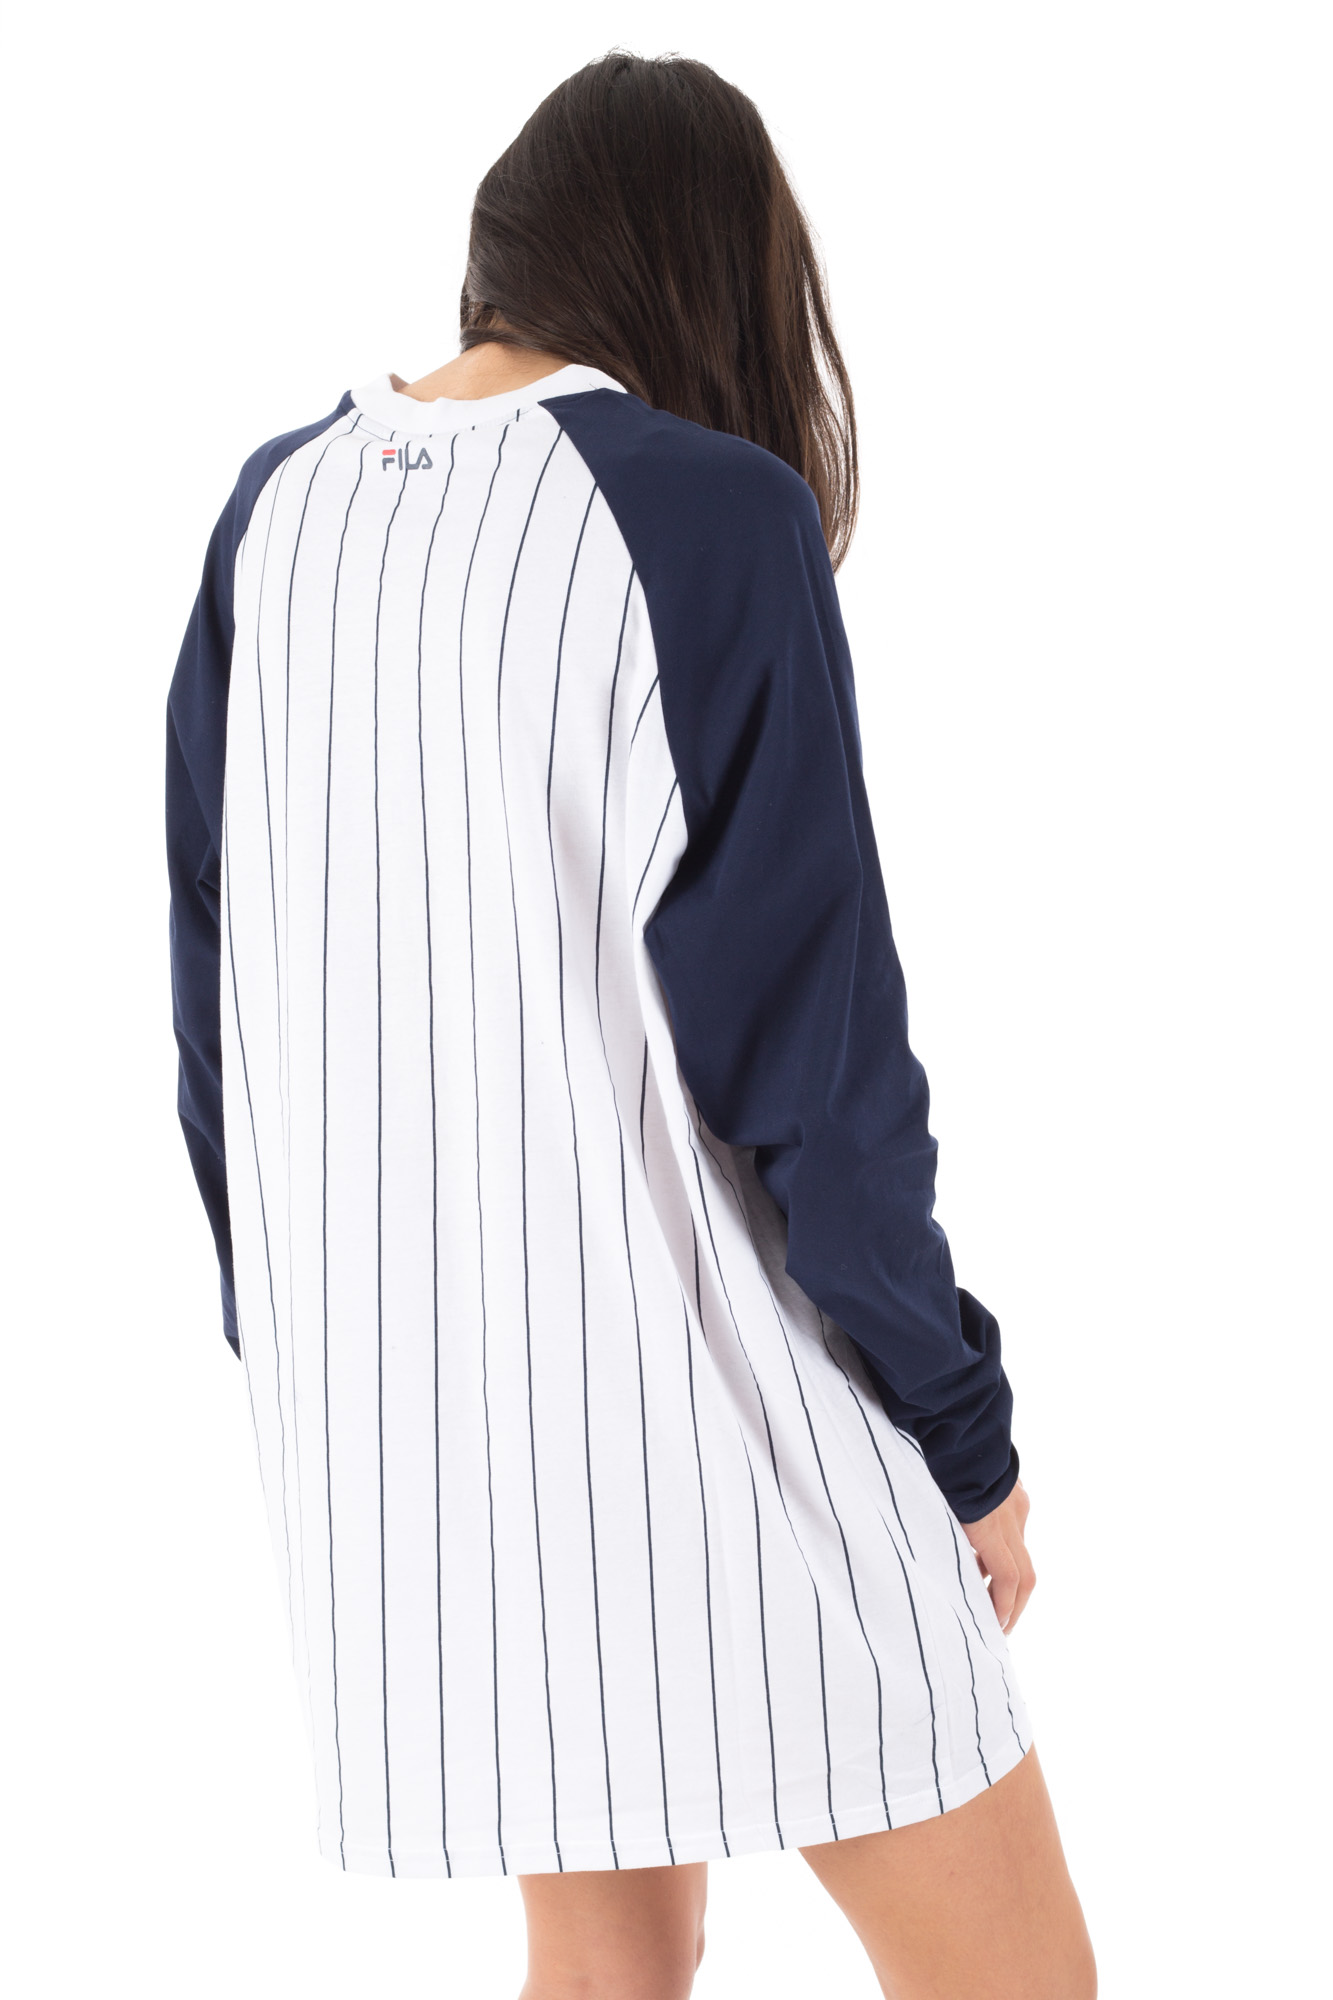 Fila - Unisex Baseball long-sleeved top